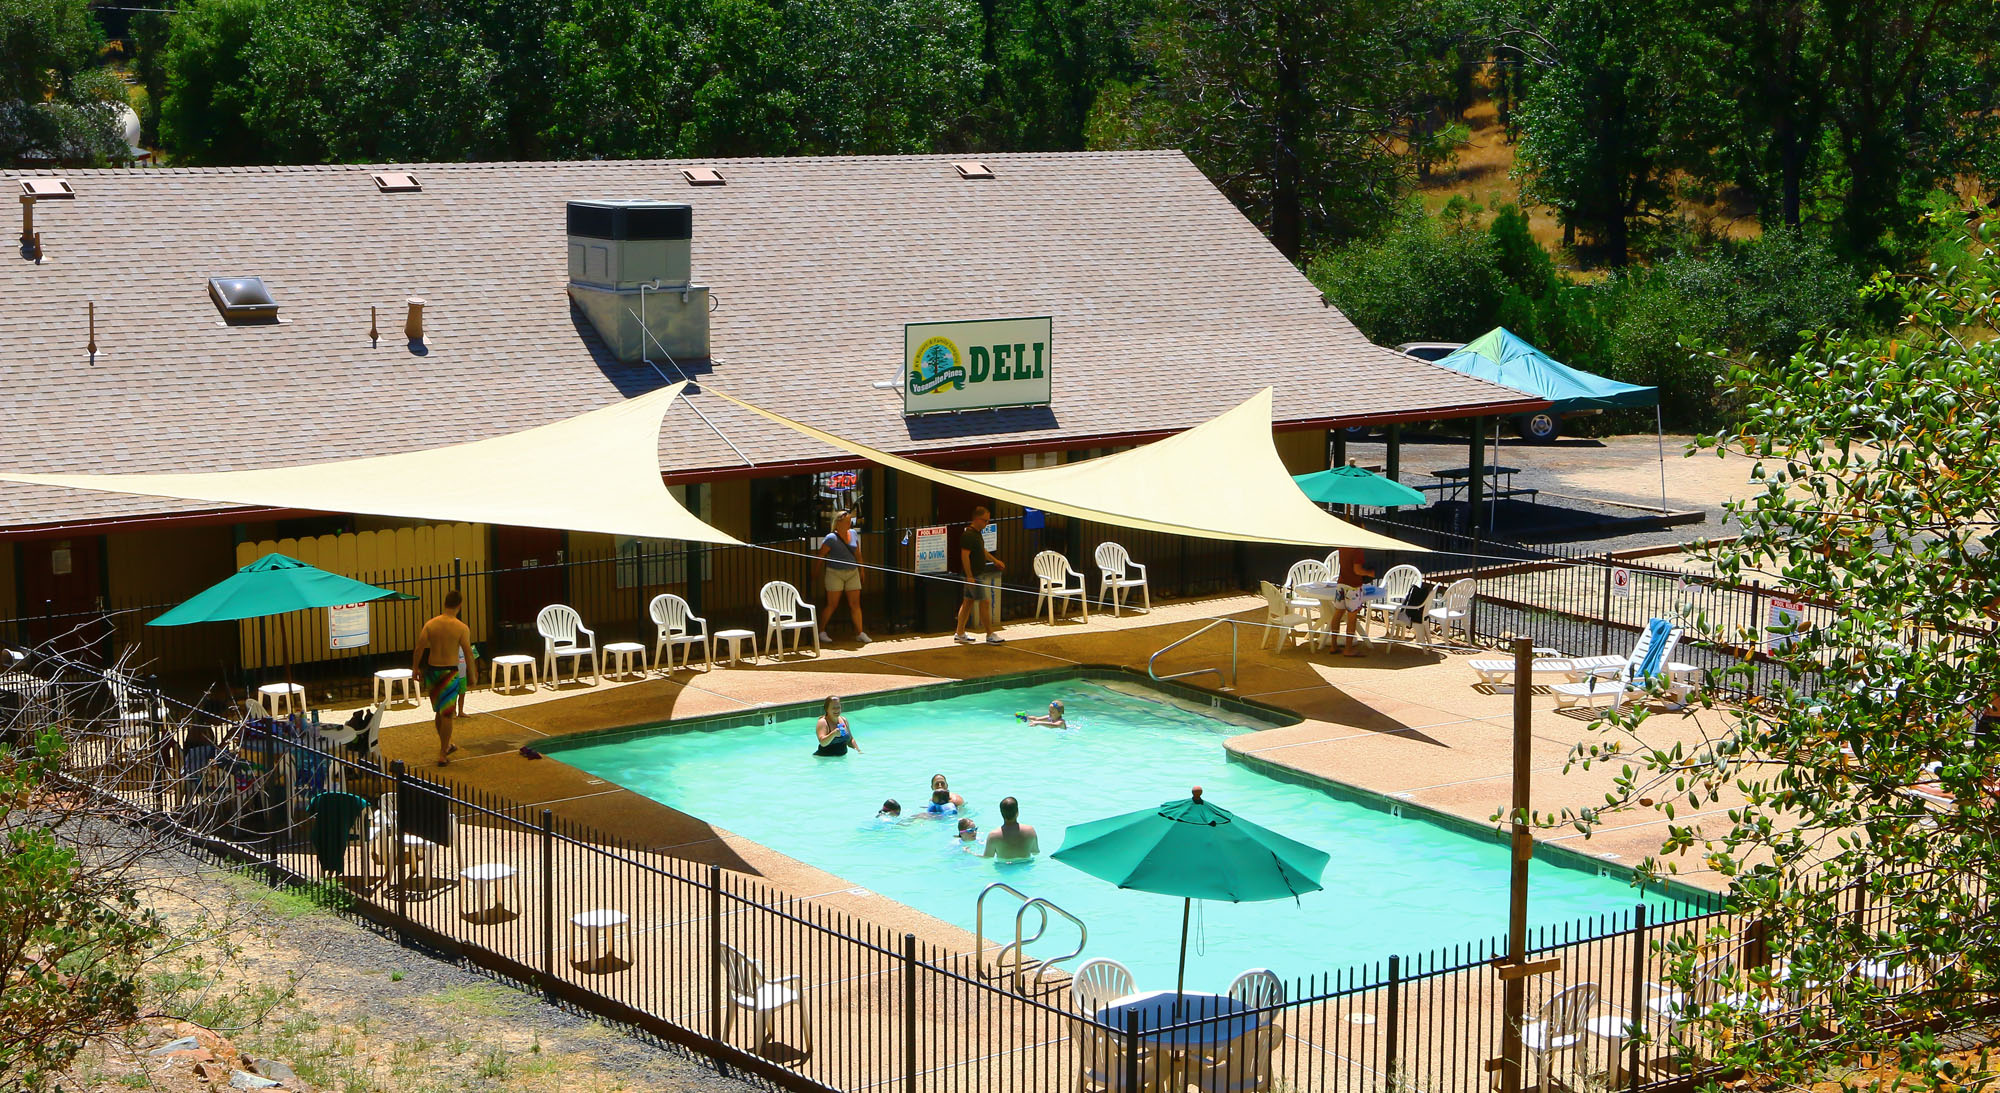 Our pool and adjacent Deli/Snack Bar will be open for your enjoyment as soon as Covid-19 restrictions are lifted.